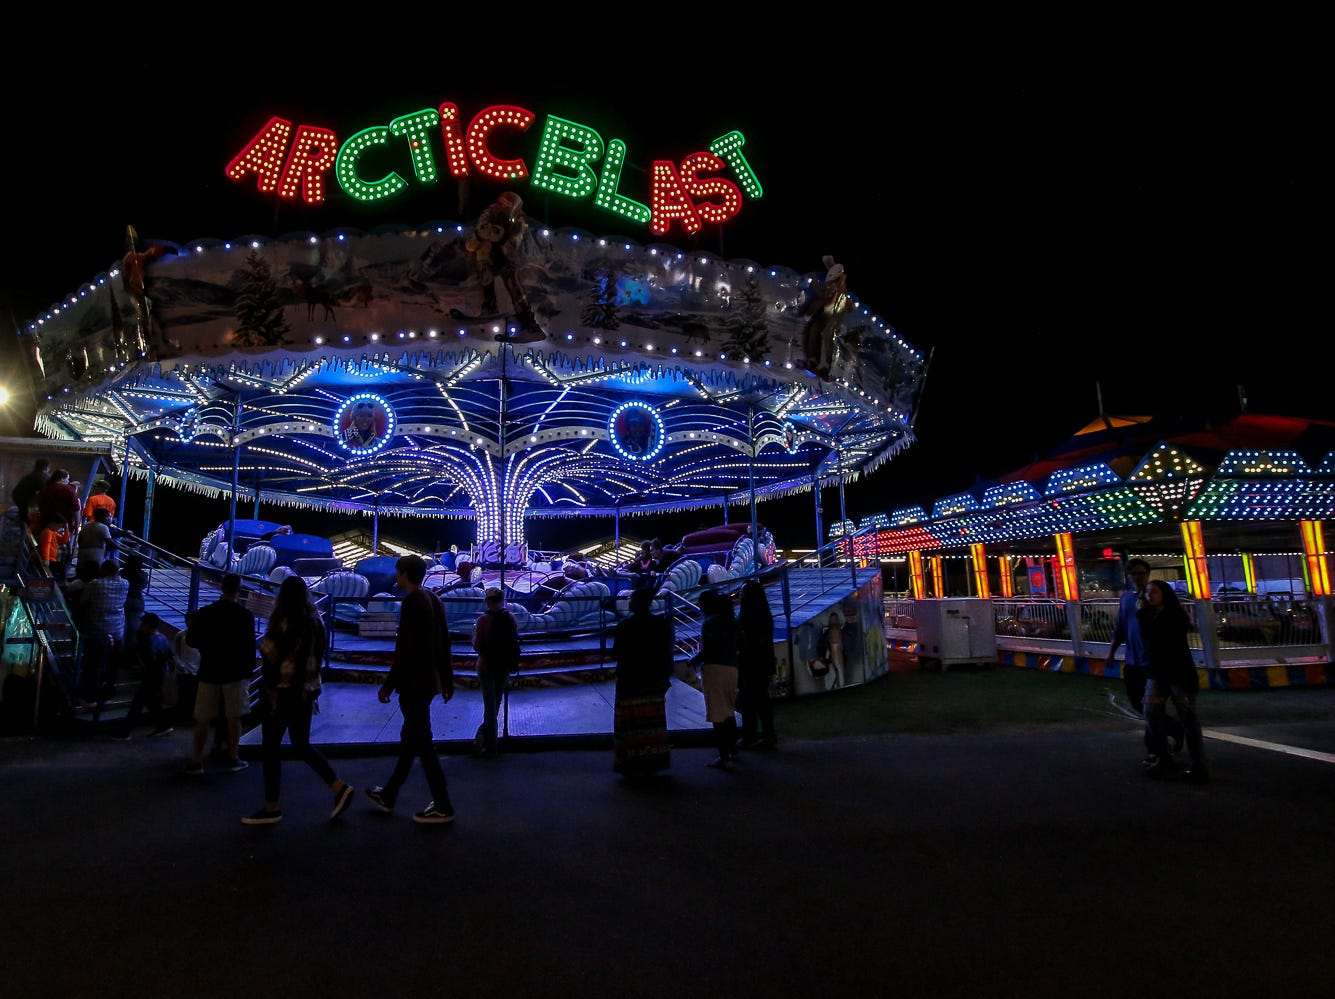 Scenes from the 84th annual Pensacola Interstate Fair on Monday, October 22, 2018.